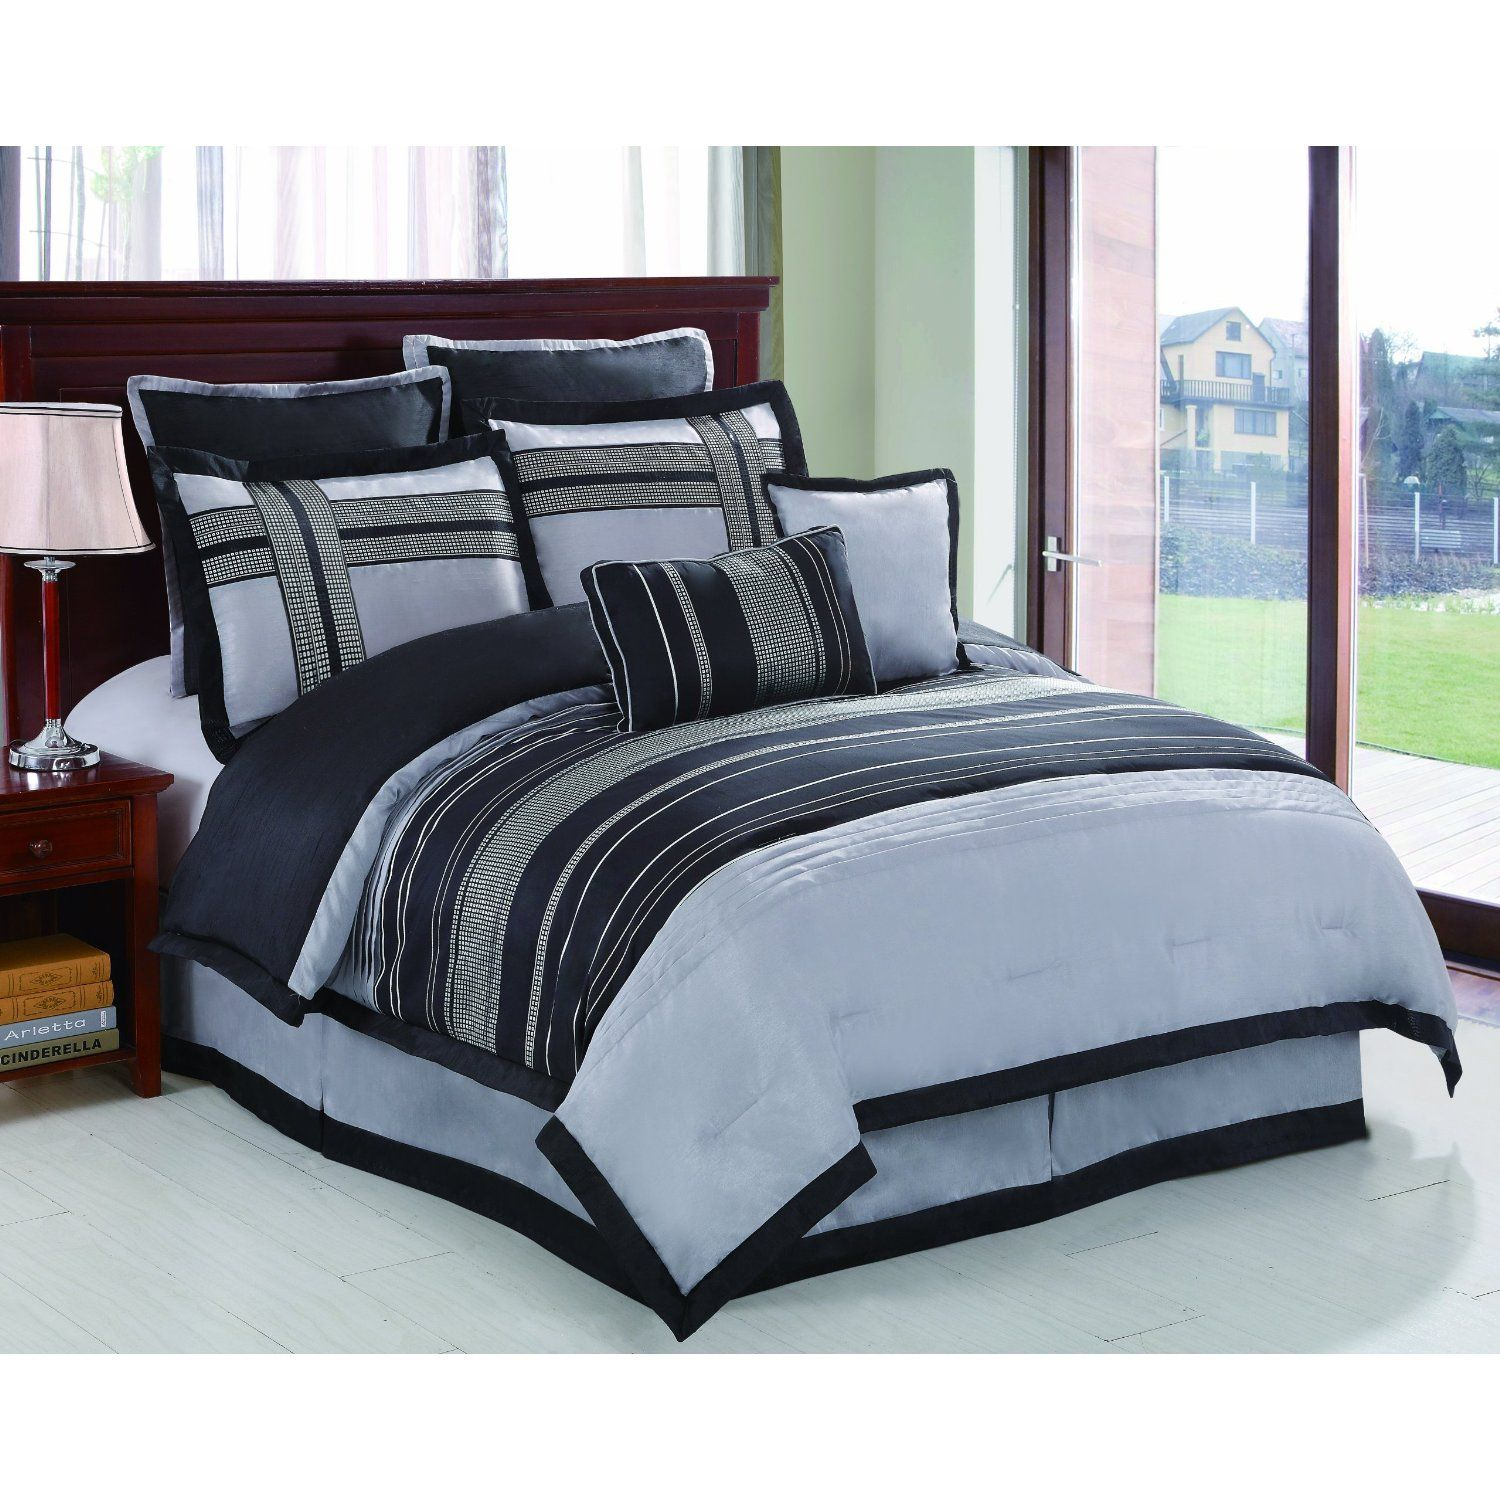 Best Blue Comforter Sets Very Sophisticated And Modern Black 400 x 300